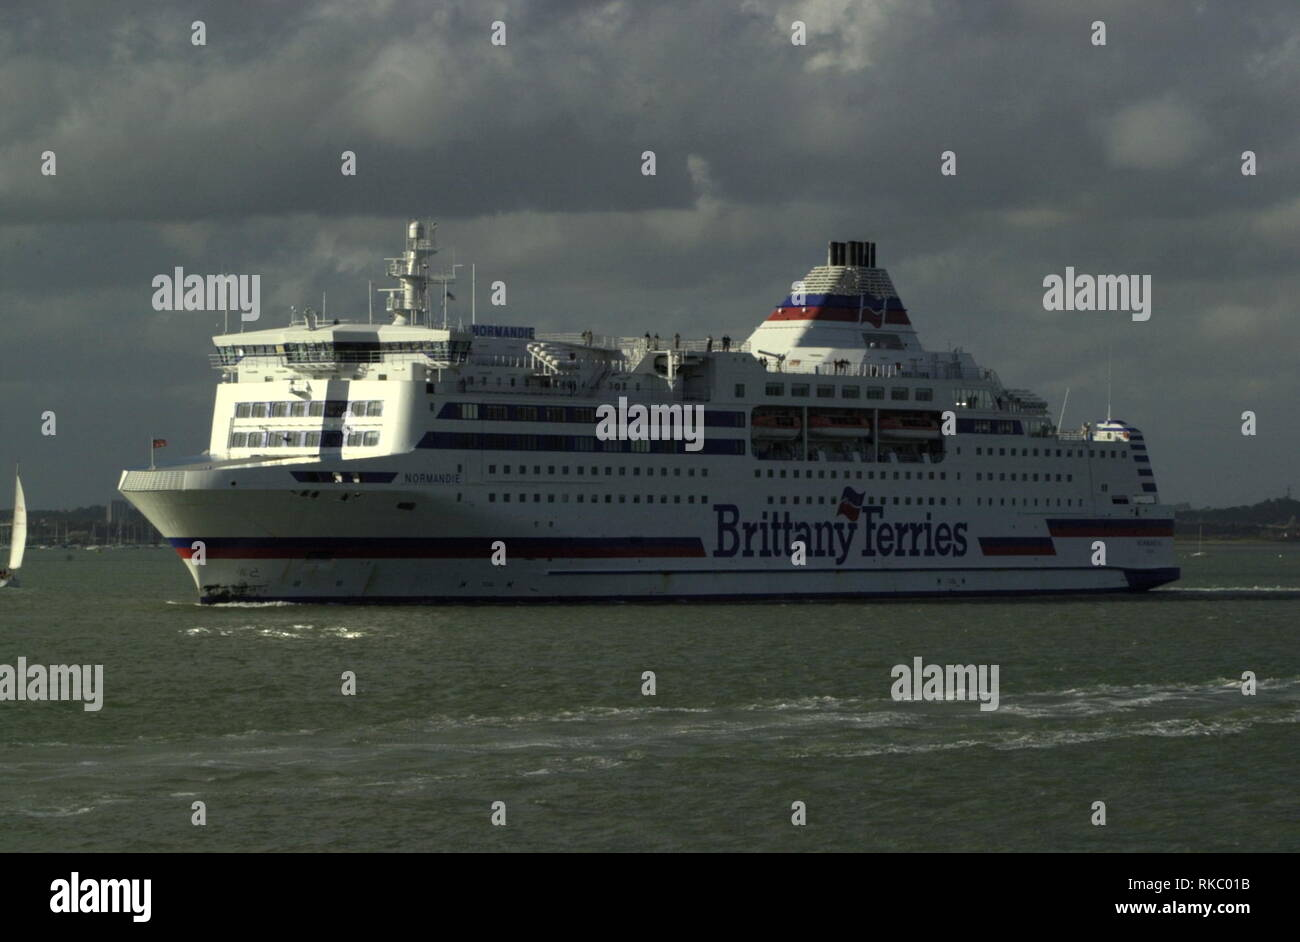 AJAXNETPHOTO. OCTOBER, 2004. PORTSMOUTH, ENGLAND. - BRITTANY FERRIES CROSS CHANNEL CAR AND PASSENGER FERRY NORMANDIE OUTWARD BOUND. PHOTO:JONATHAN EASTLAND/AJAX REF:D40510_1034 - Stock Image